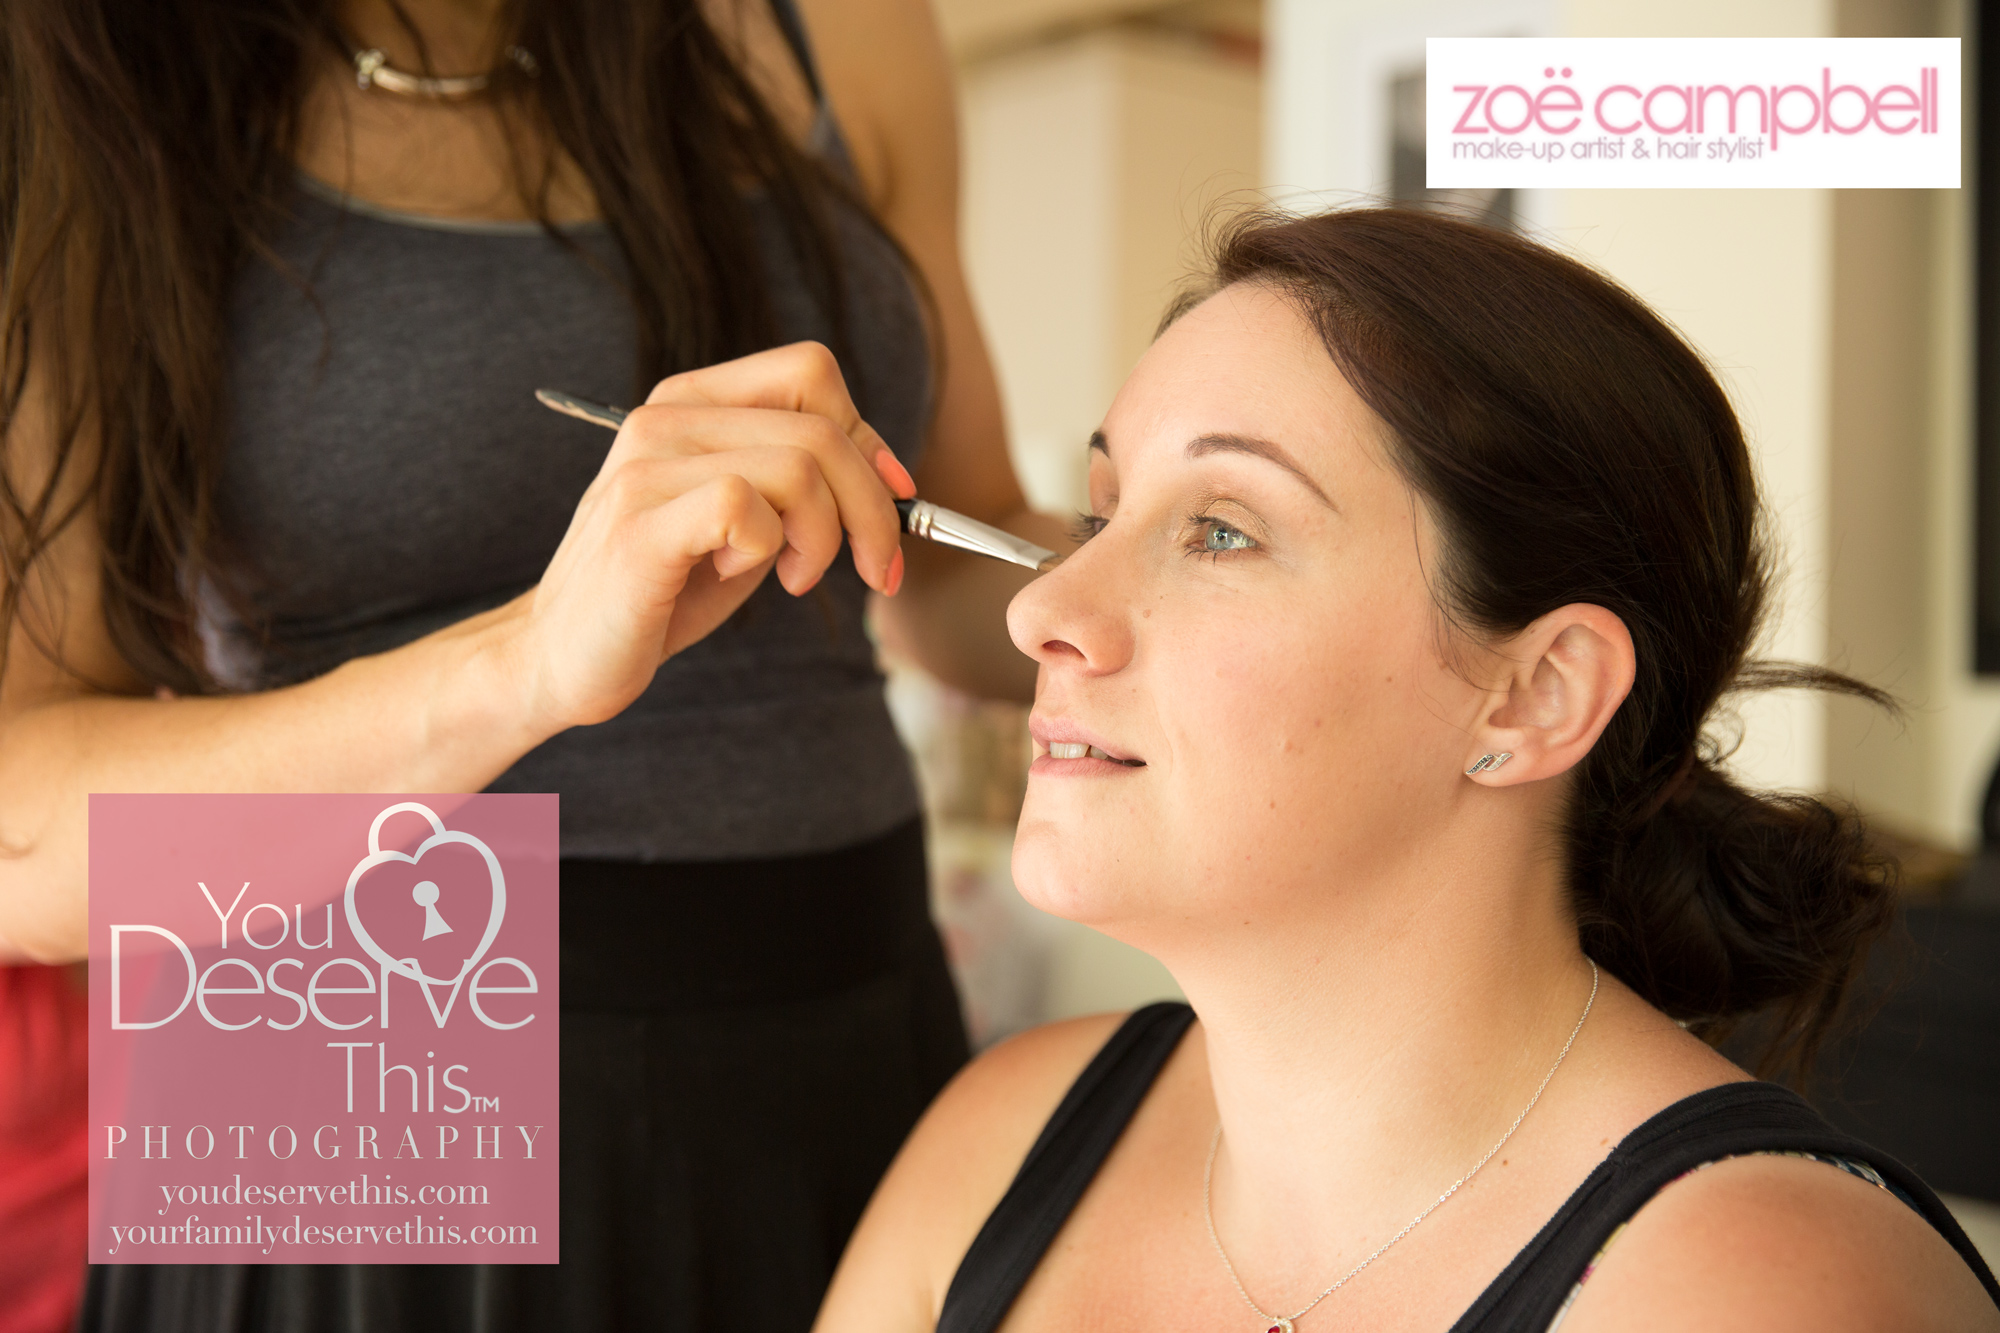 We love working with Zoe, beautiful makeovers for women and a photoshoot to capture how gorgeous you feel.  youdeservethis.com